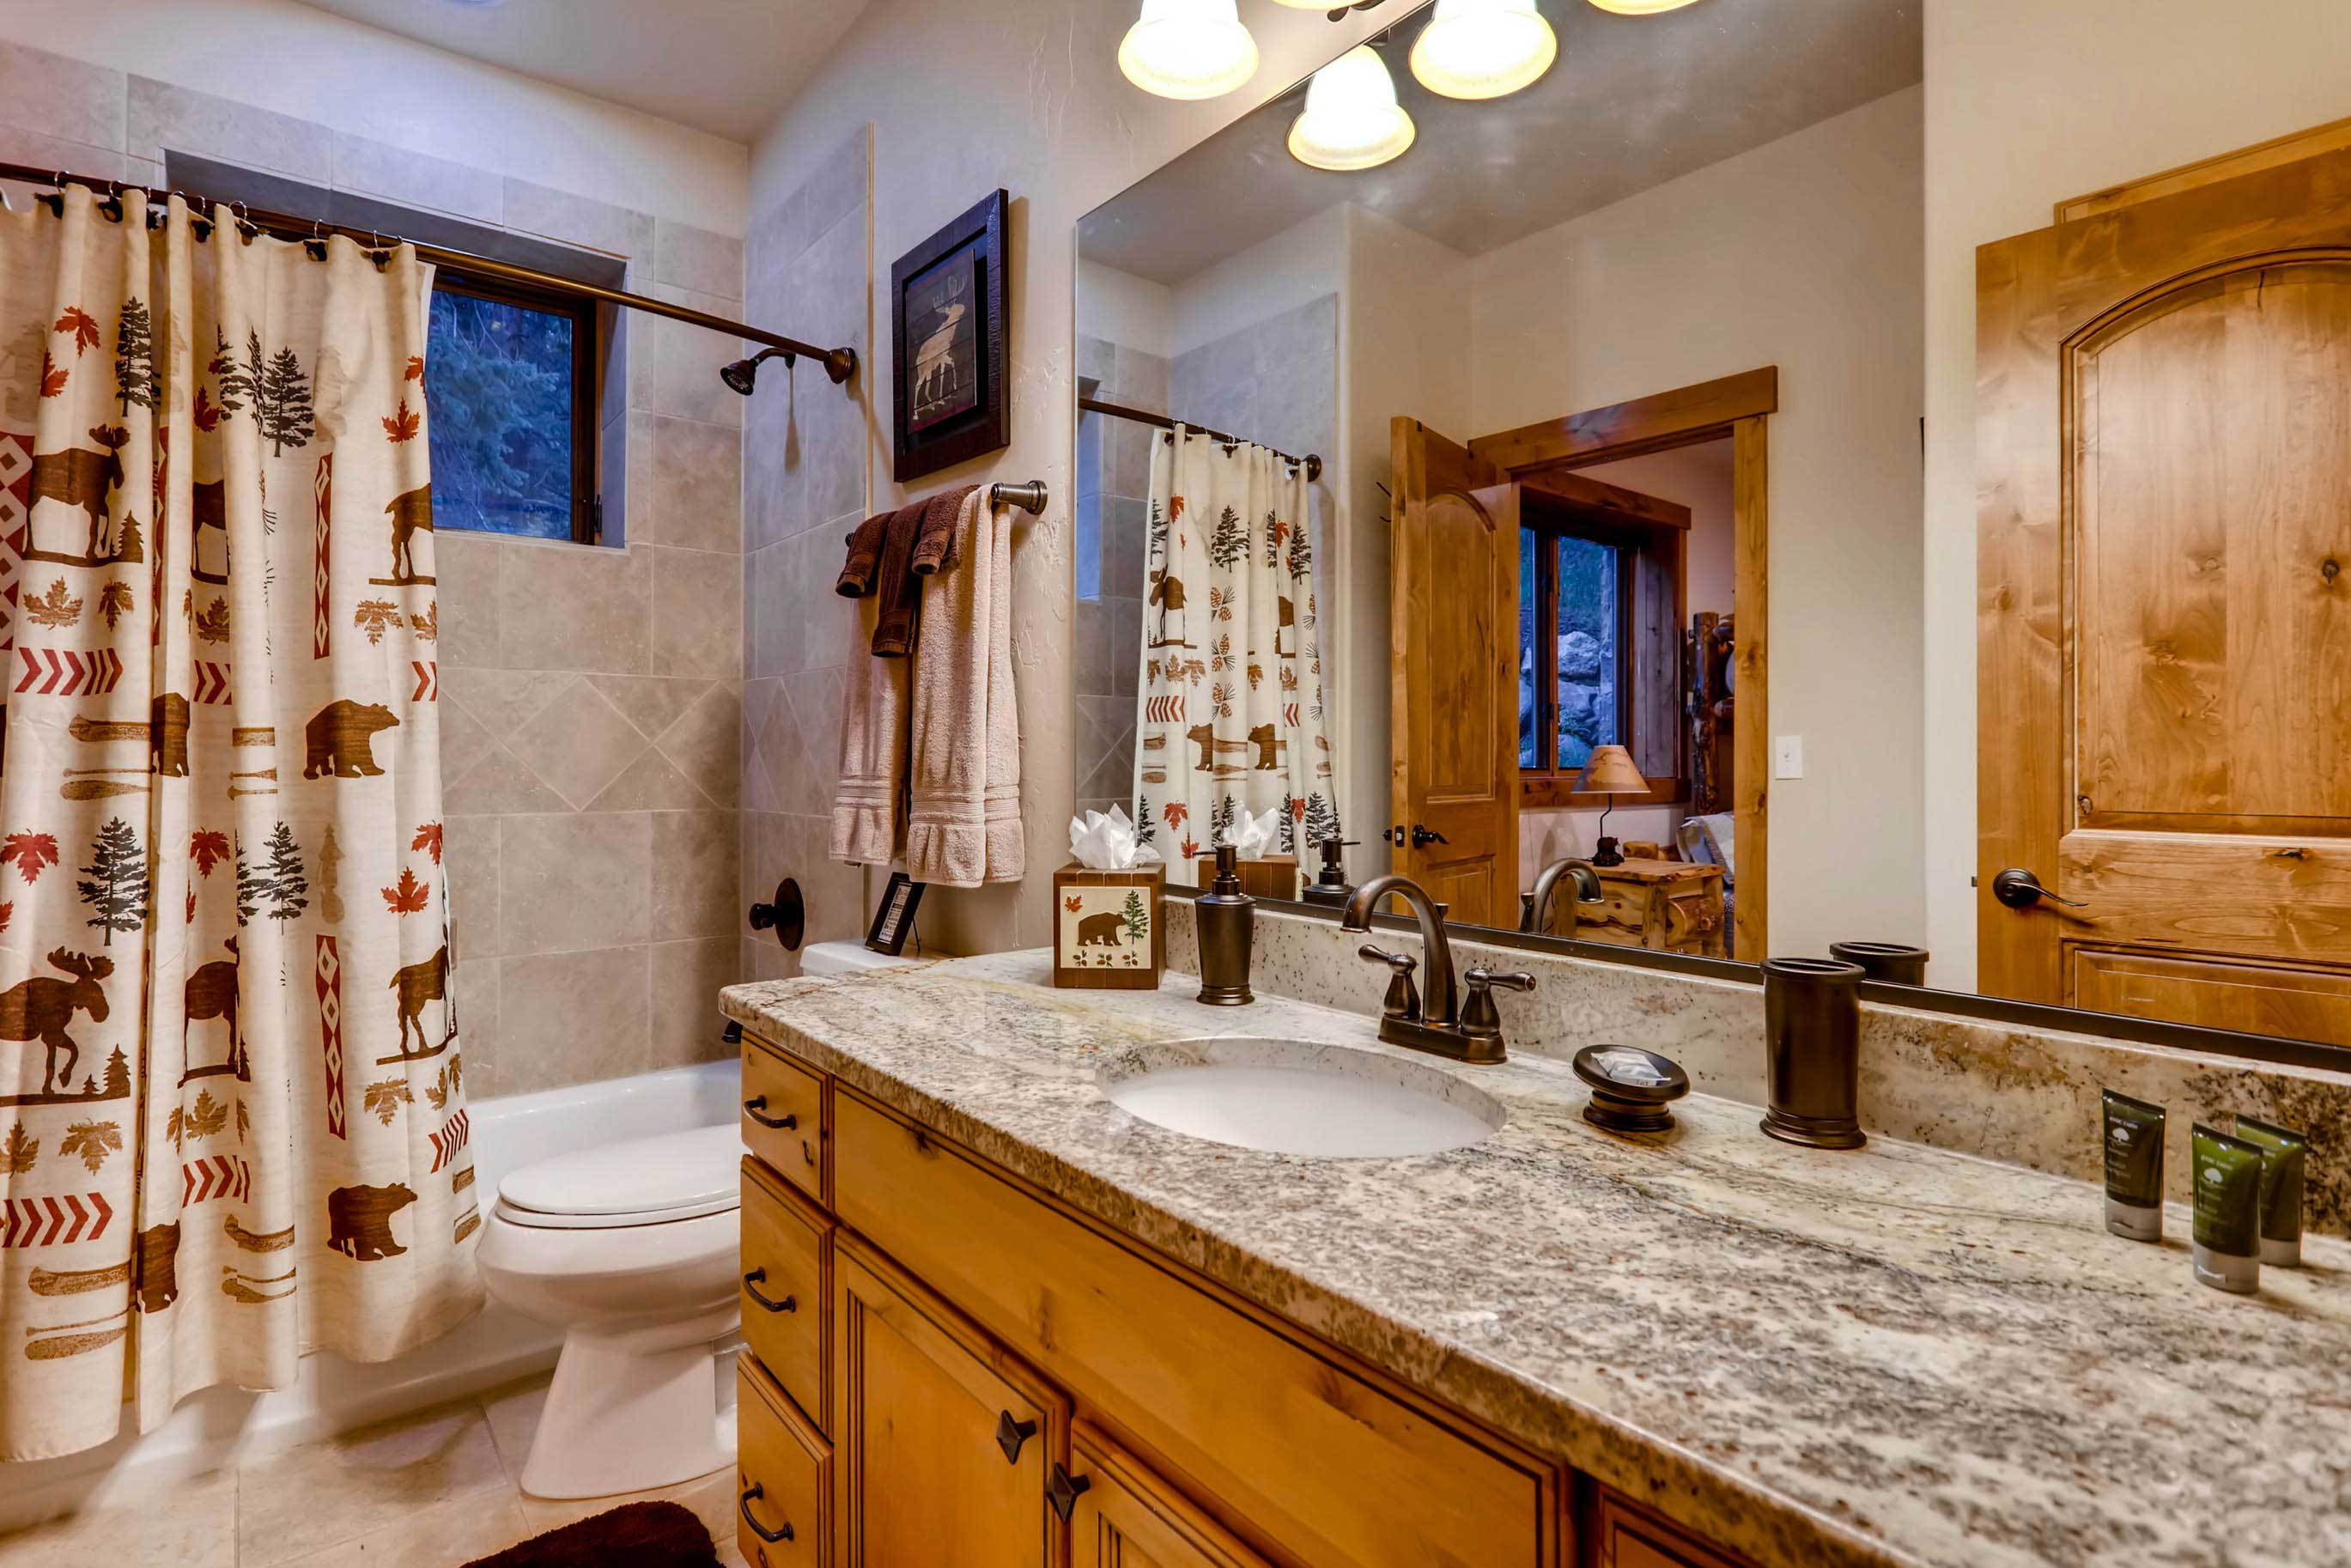 With 4 full bathrooms, you and your loved ones will have plenty of privacy.